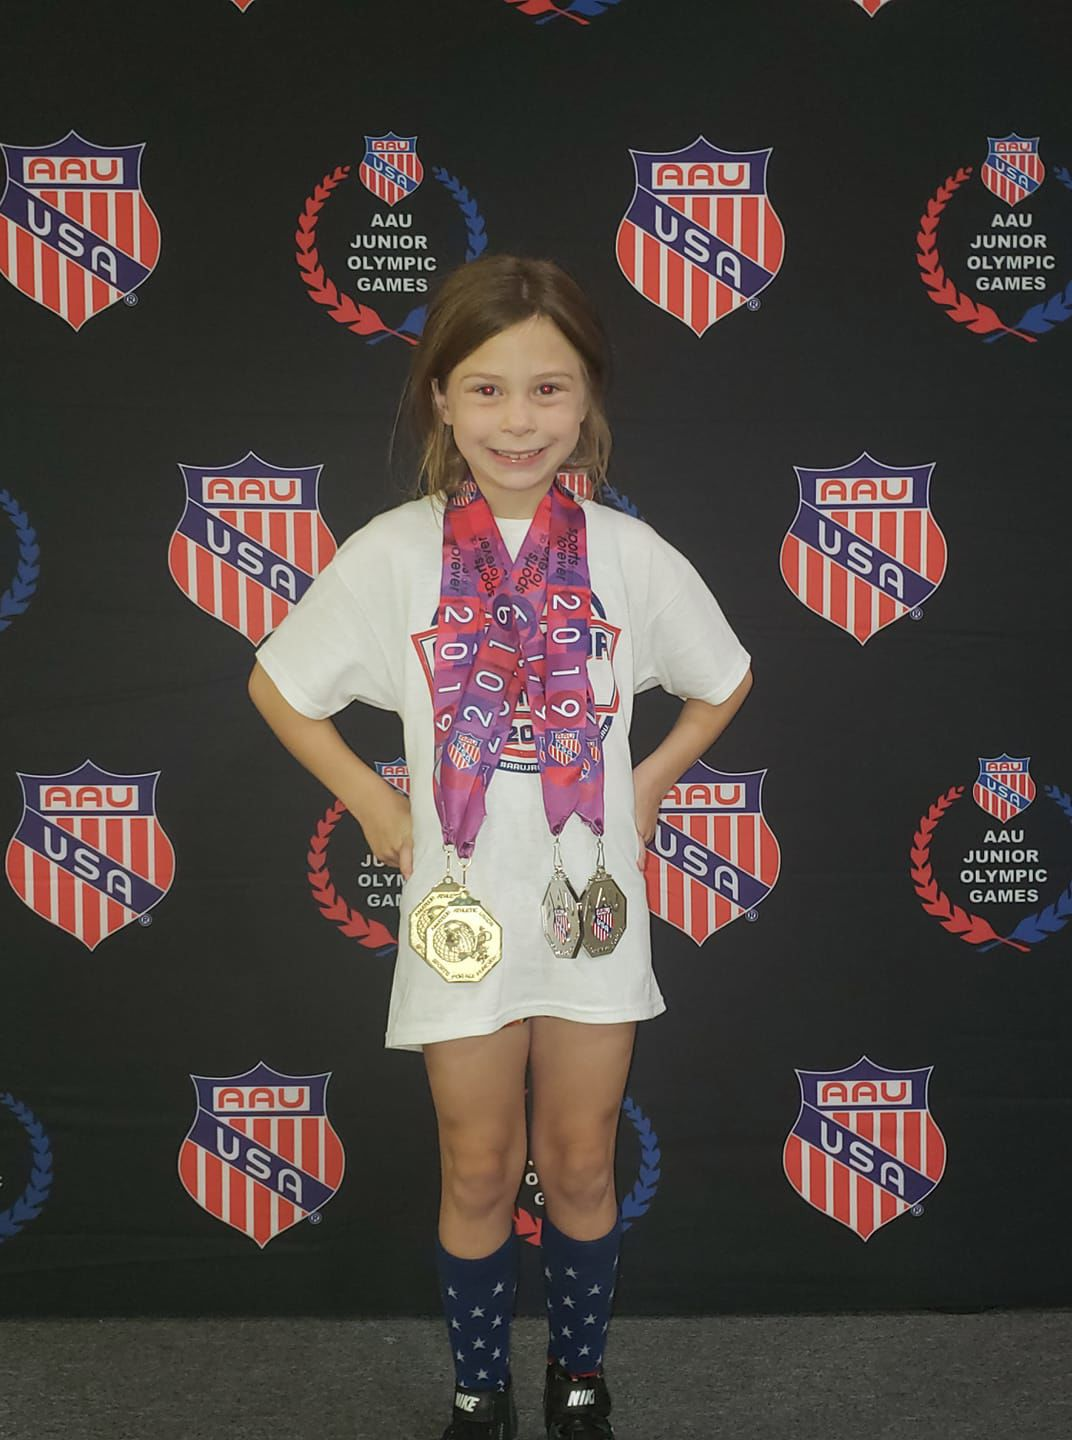 Abbie Peterson with medals